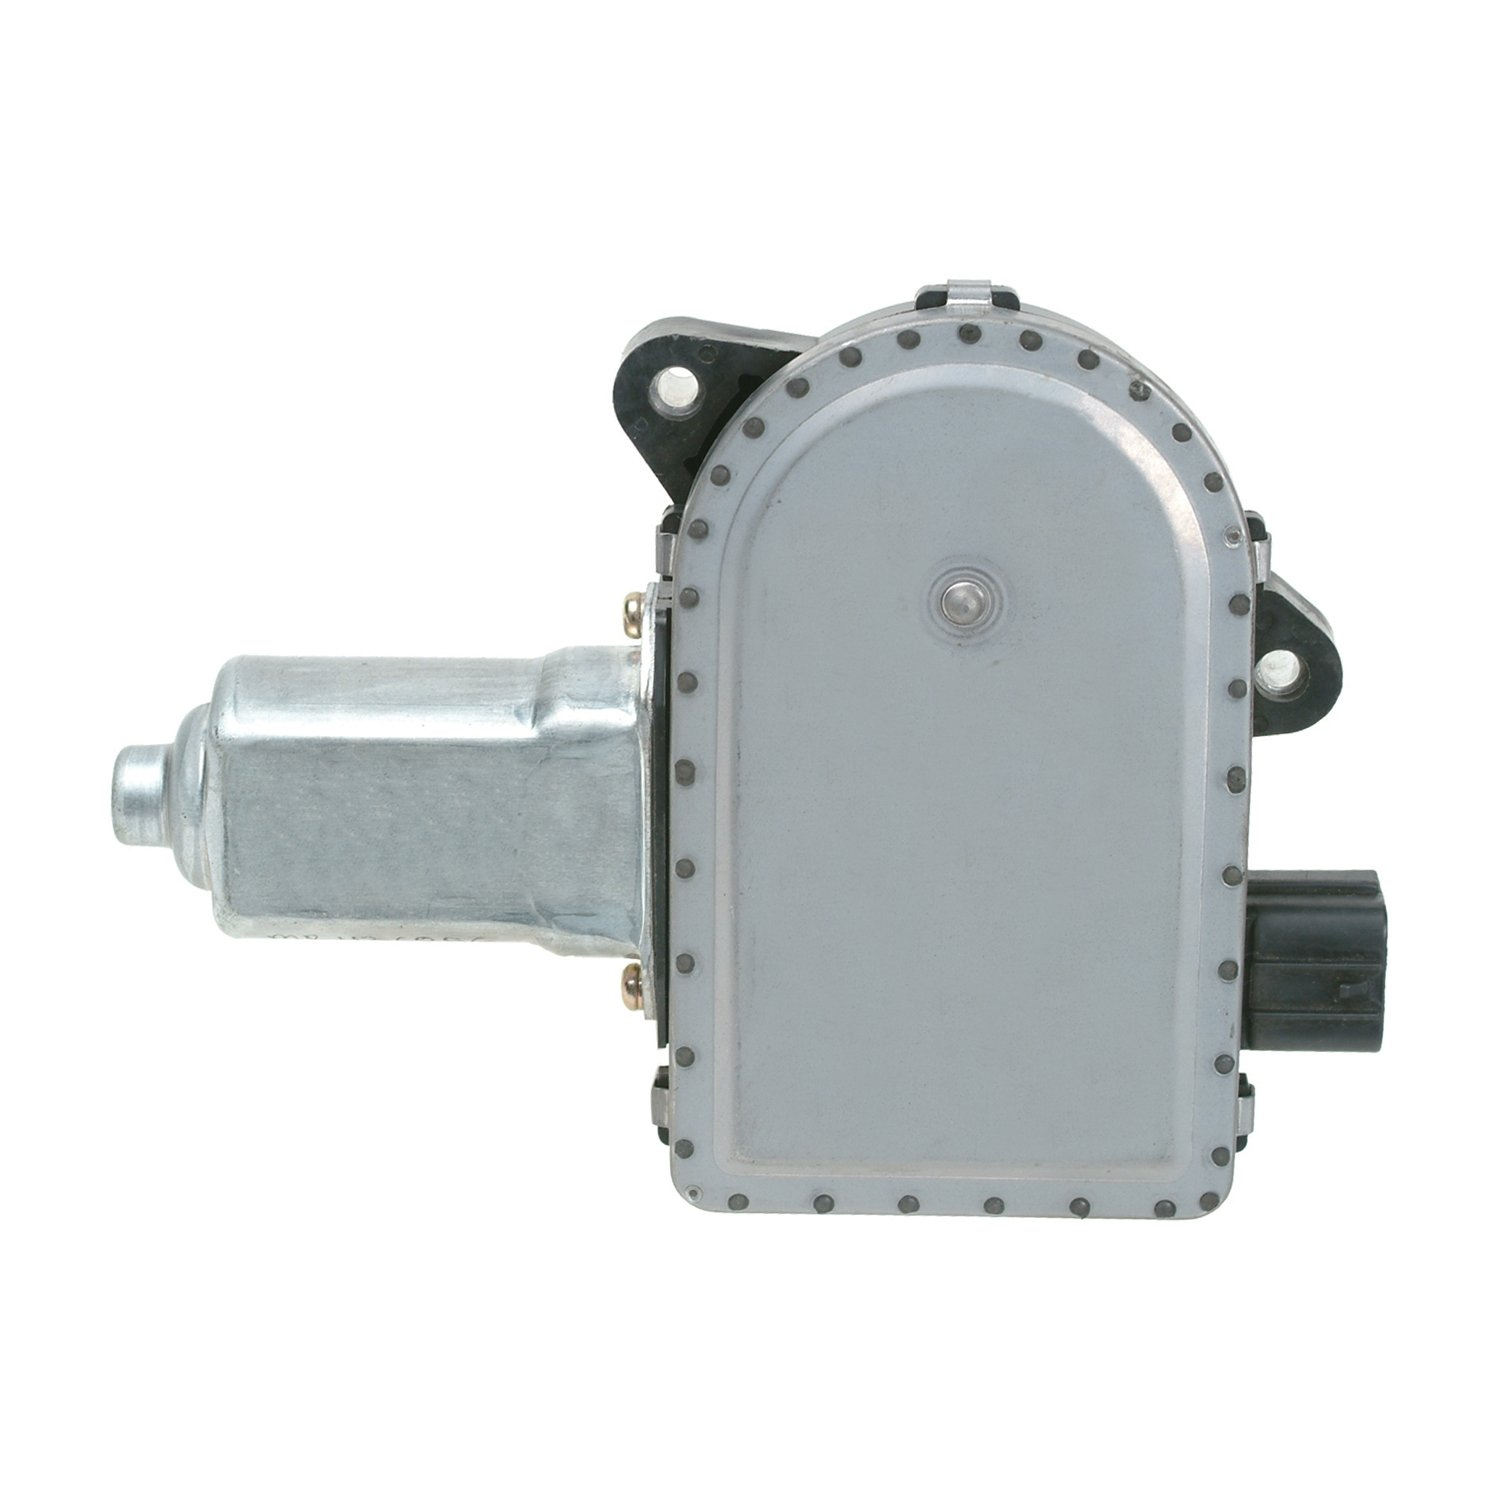 Cardone 47-1927 Remanufactured Import Window Lift Motor